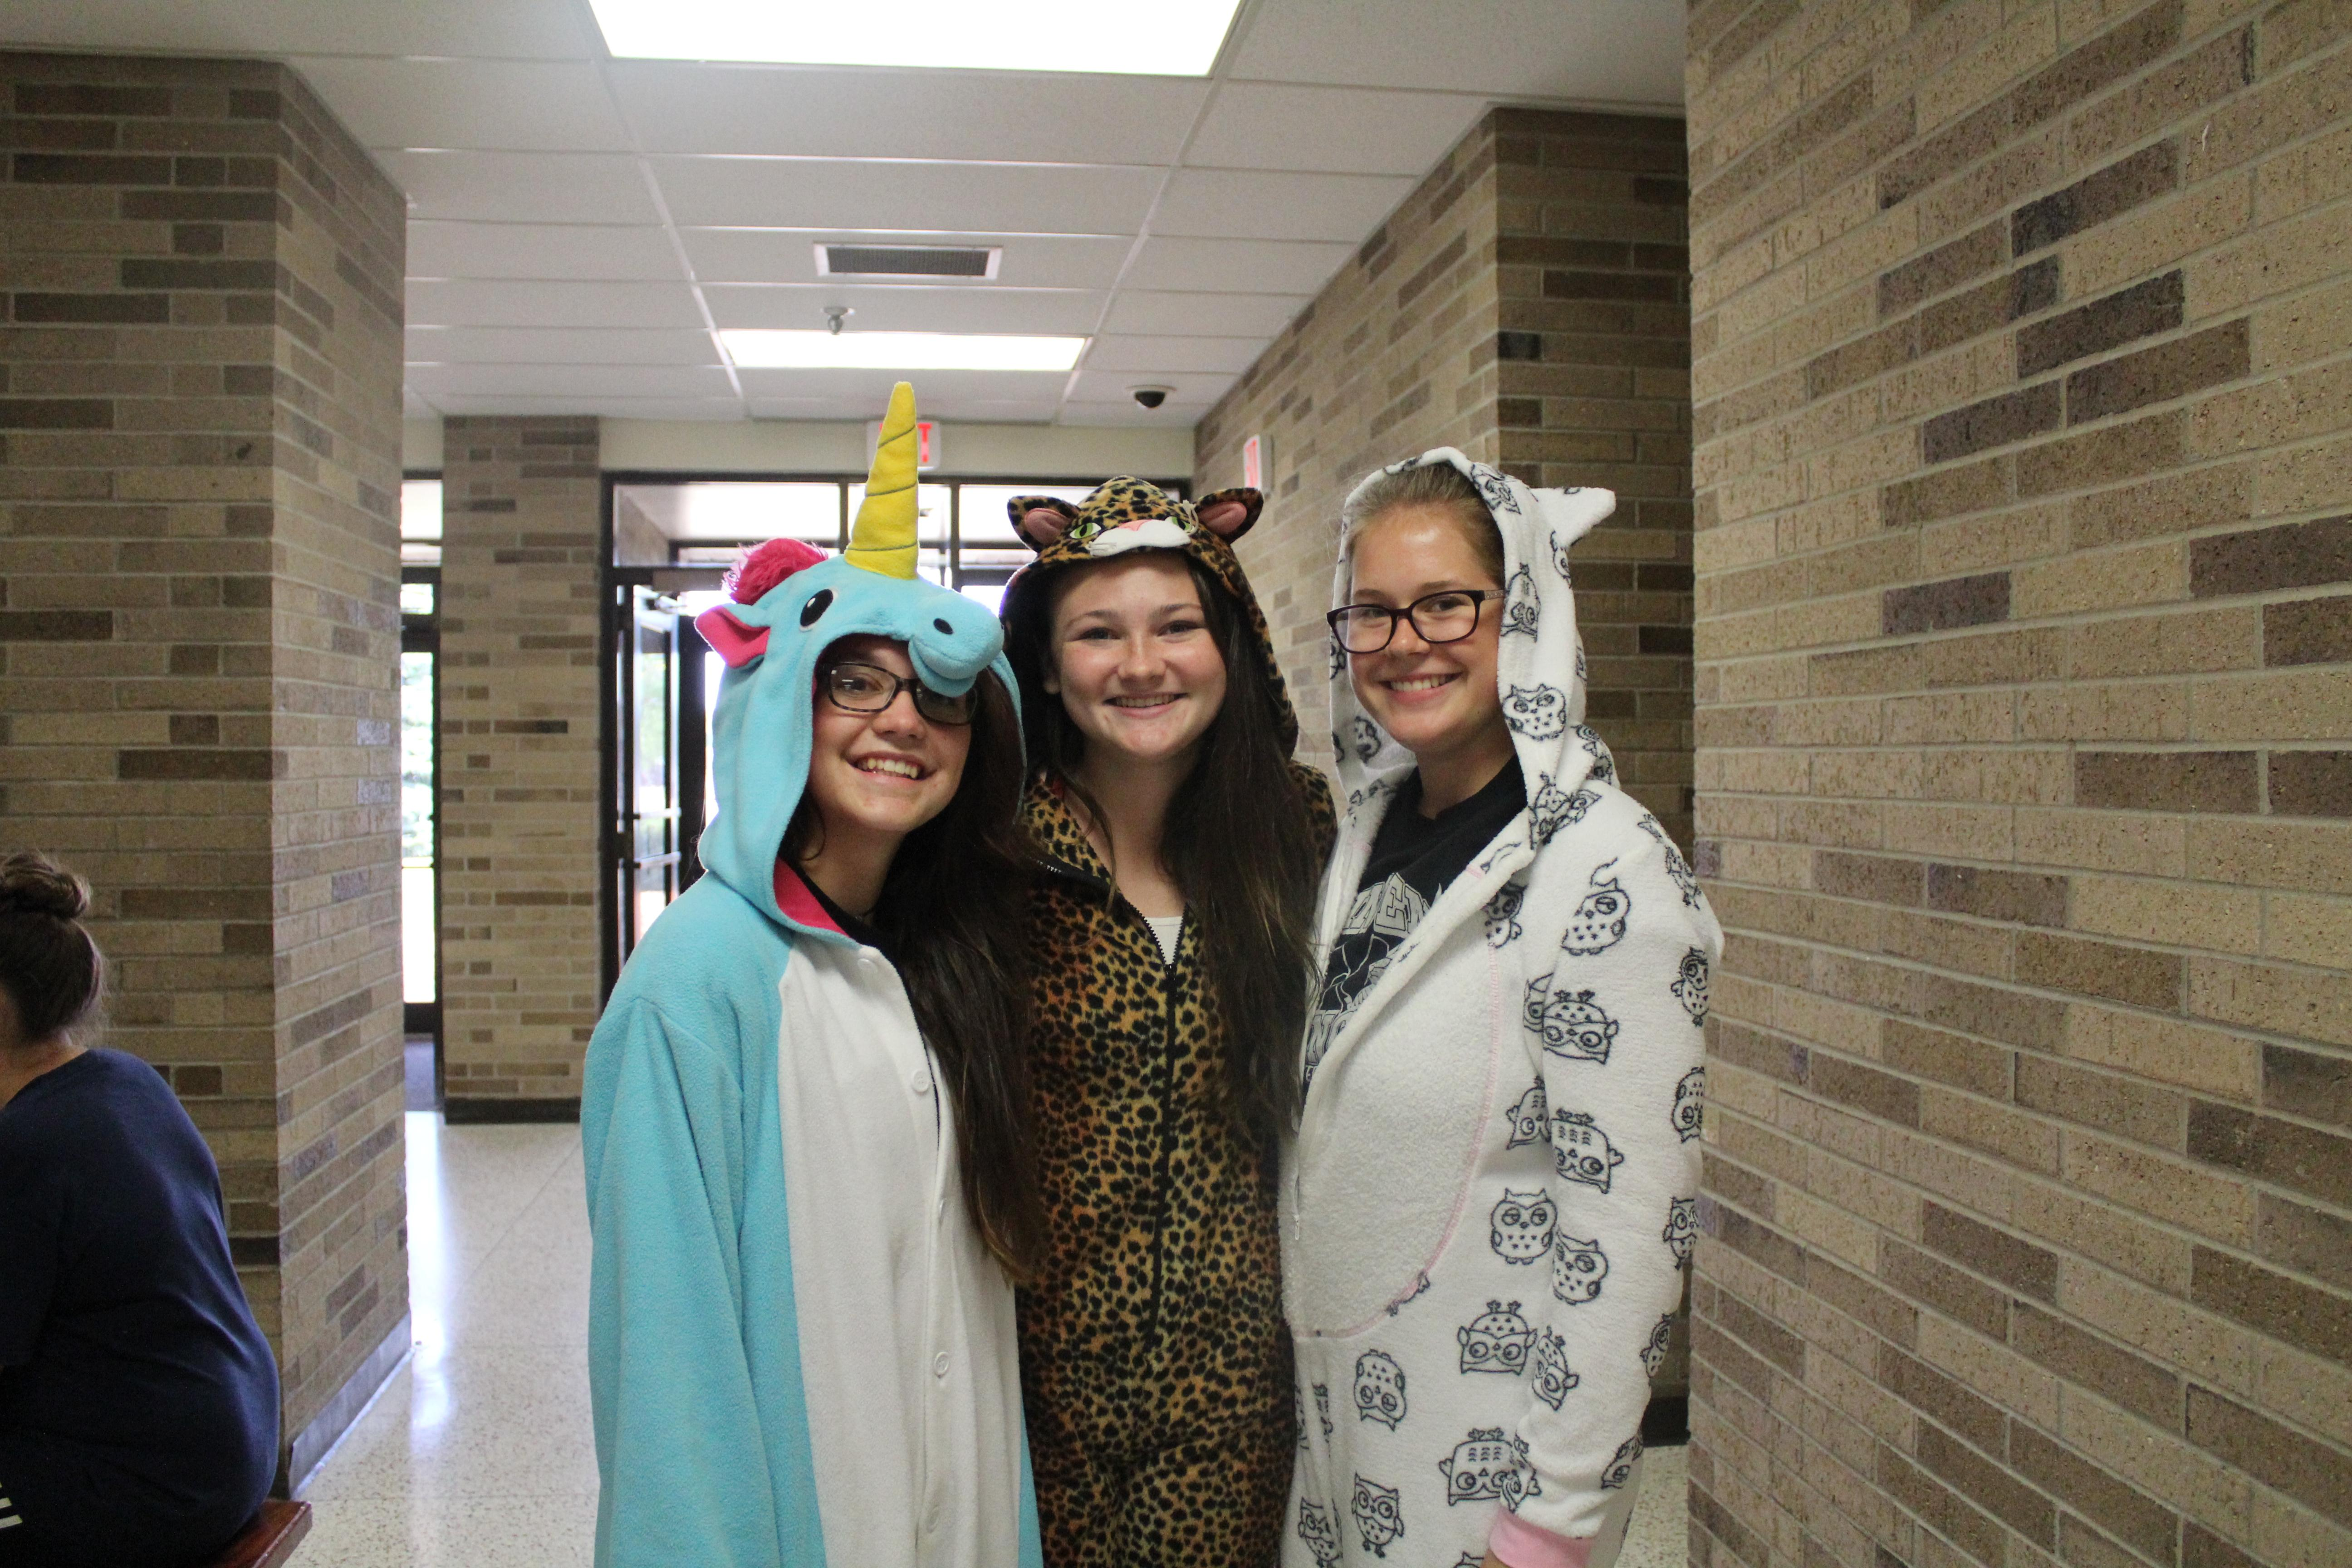 Students dressed in pajamas